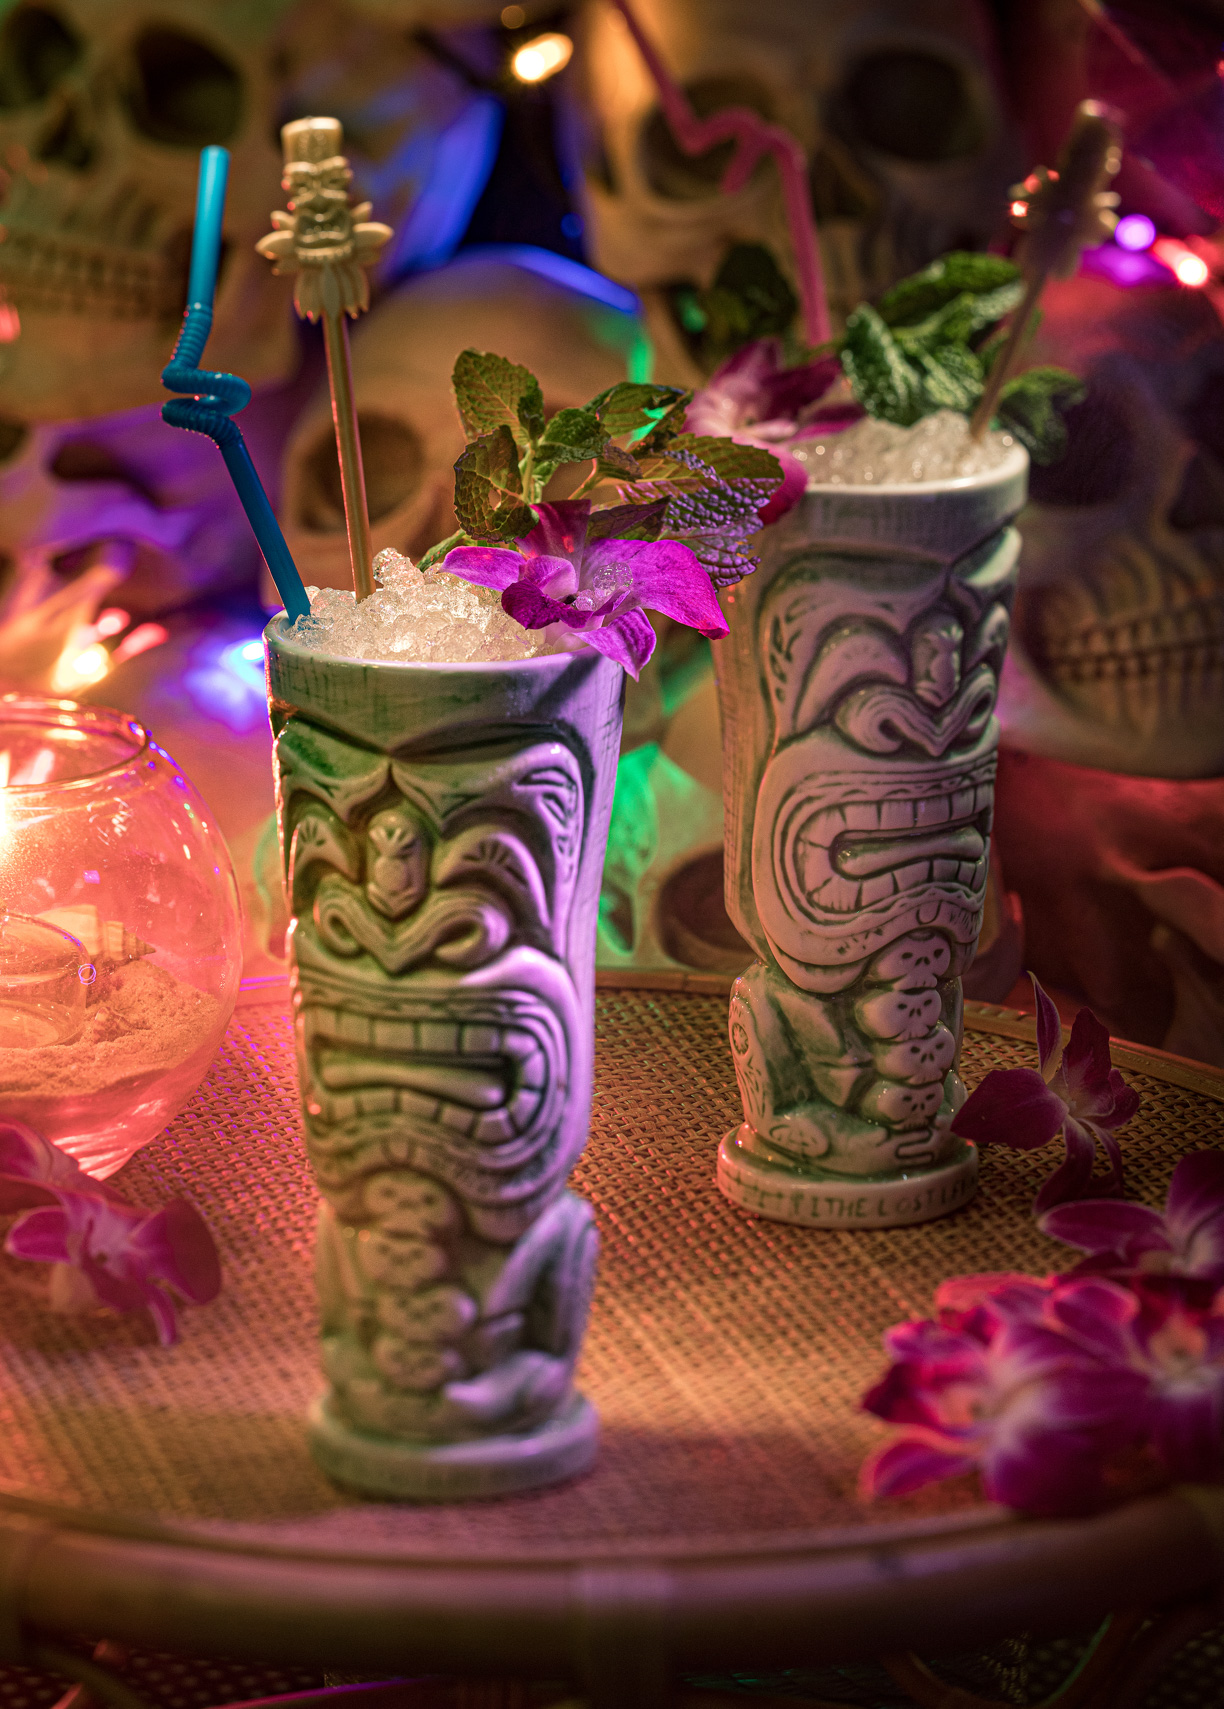 Cocktail Photo By Jason Risner at the Lost Lei Tiki Bar in Austin, Texas